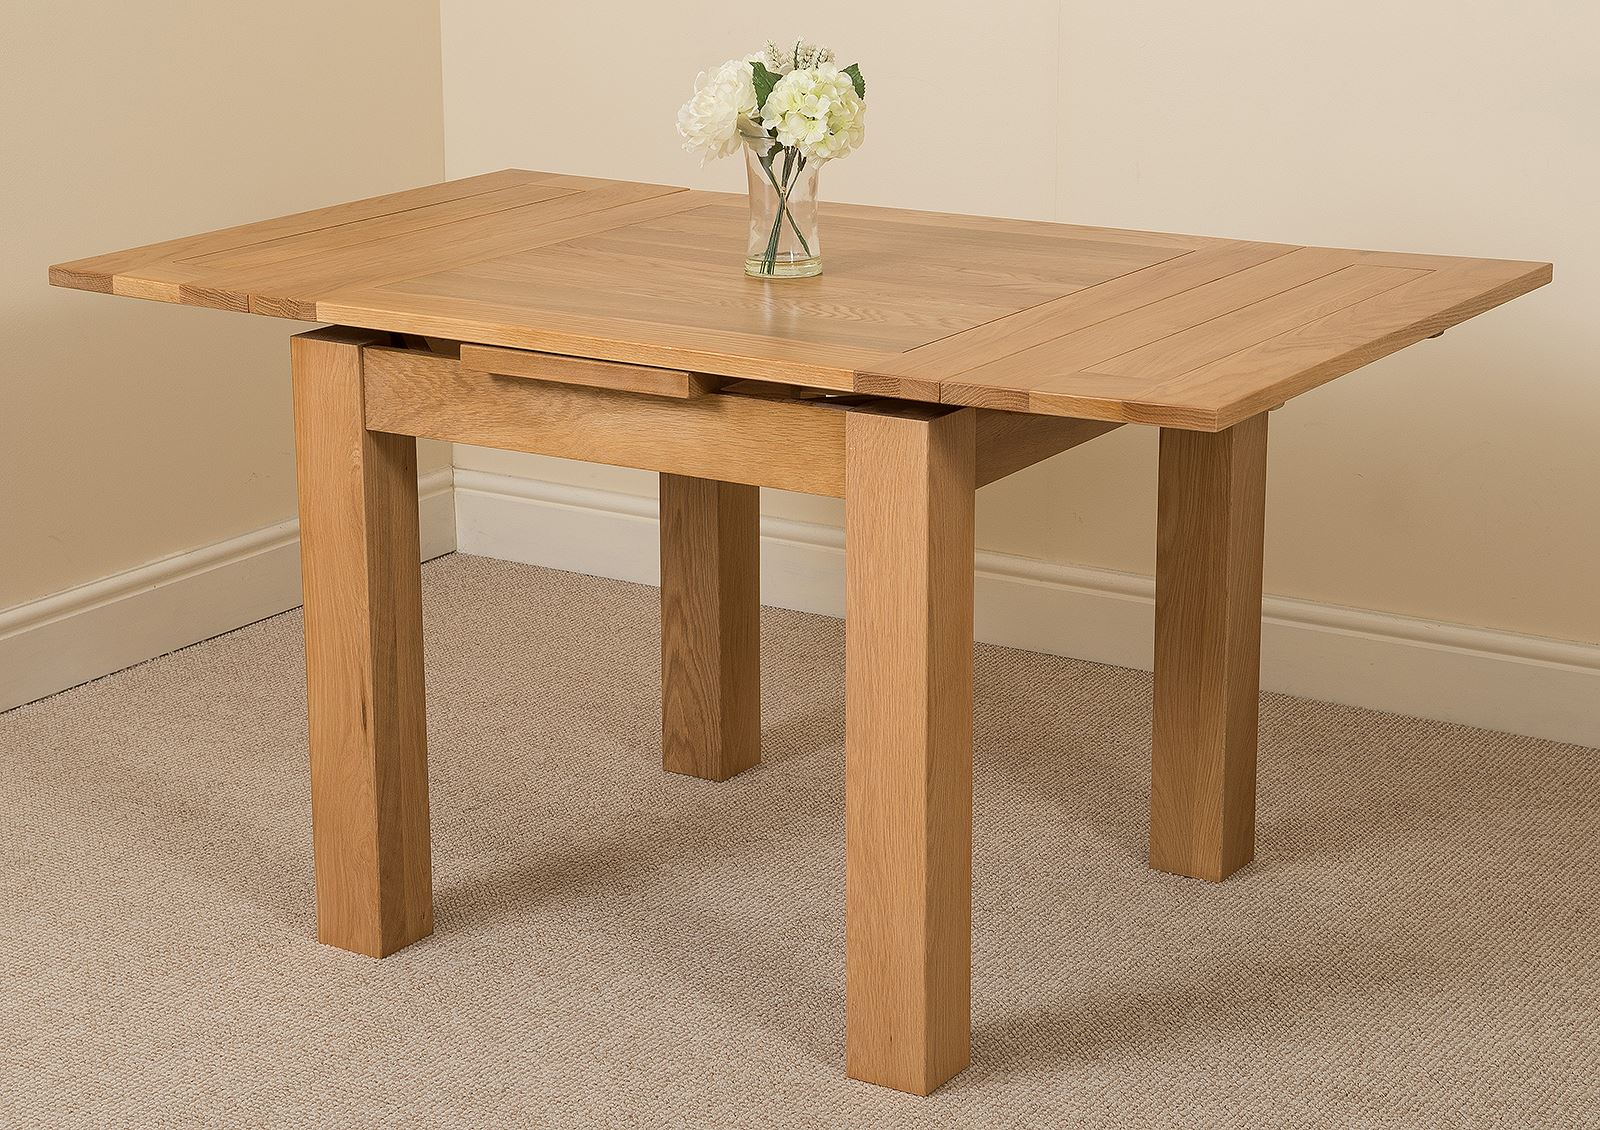 Diy Extendable Dining Table Richmond Solid Oak Wood Small 90 150cm Extending Dining